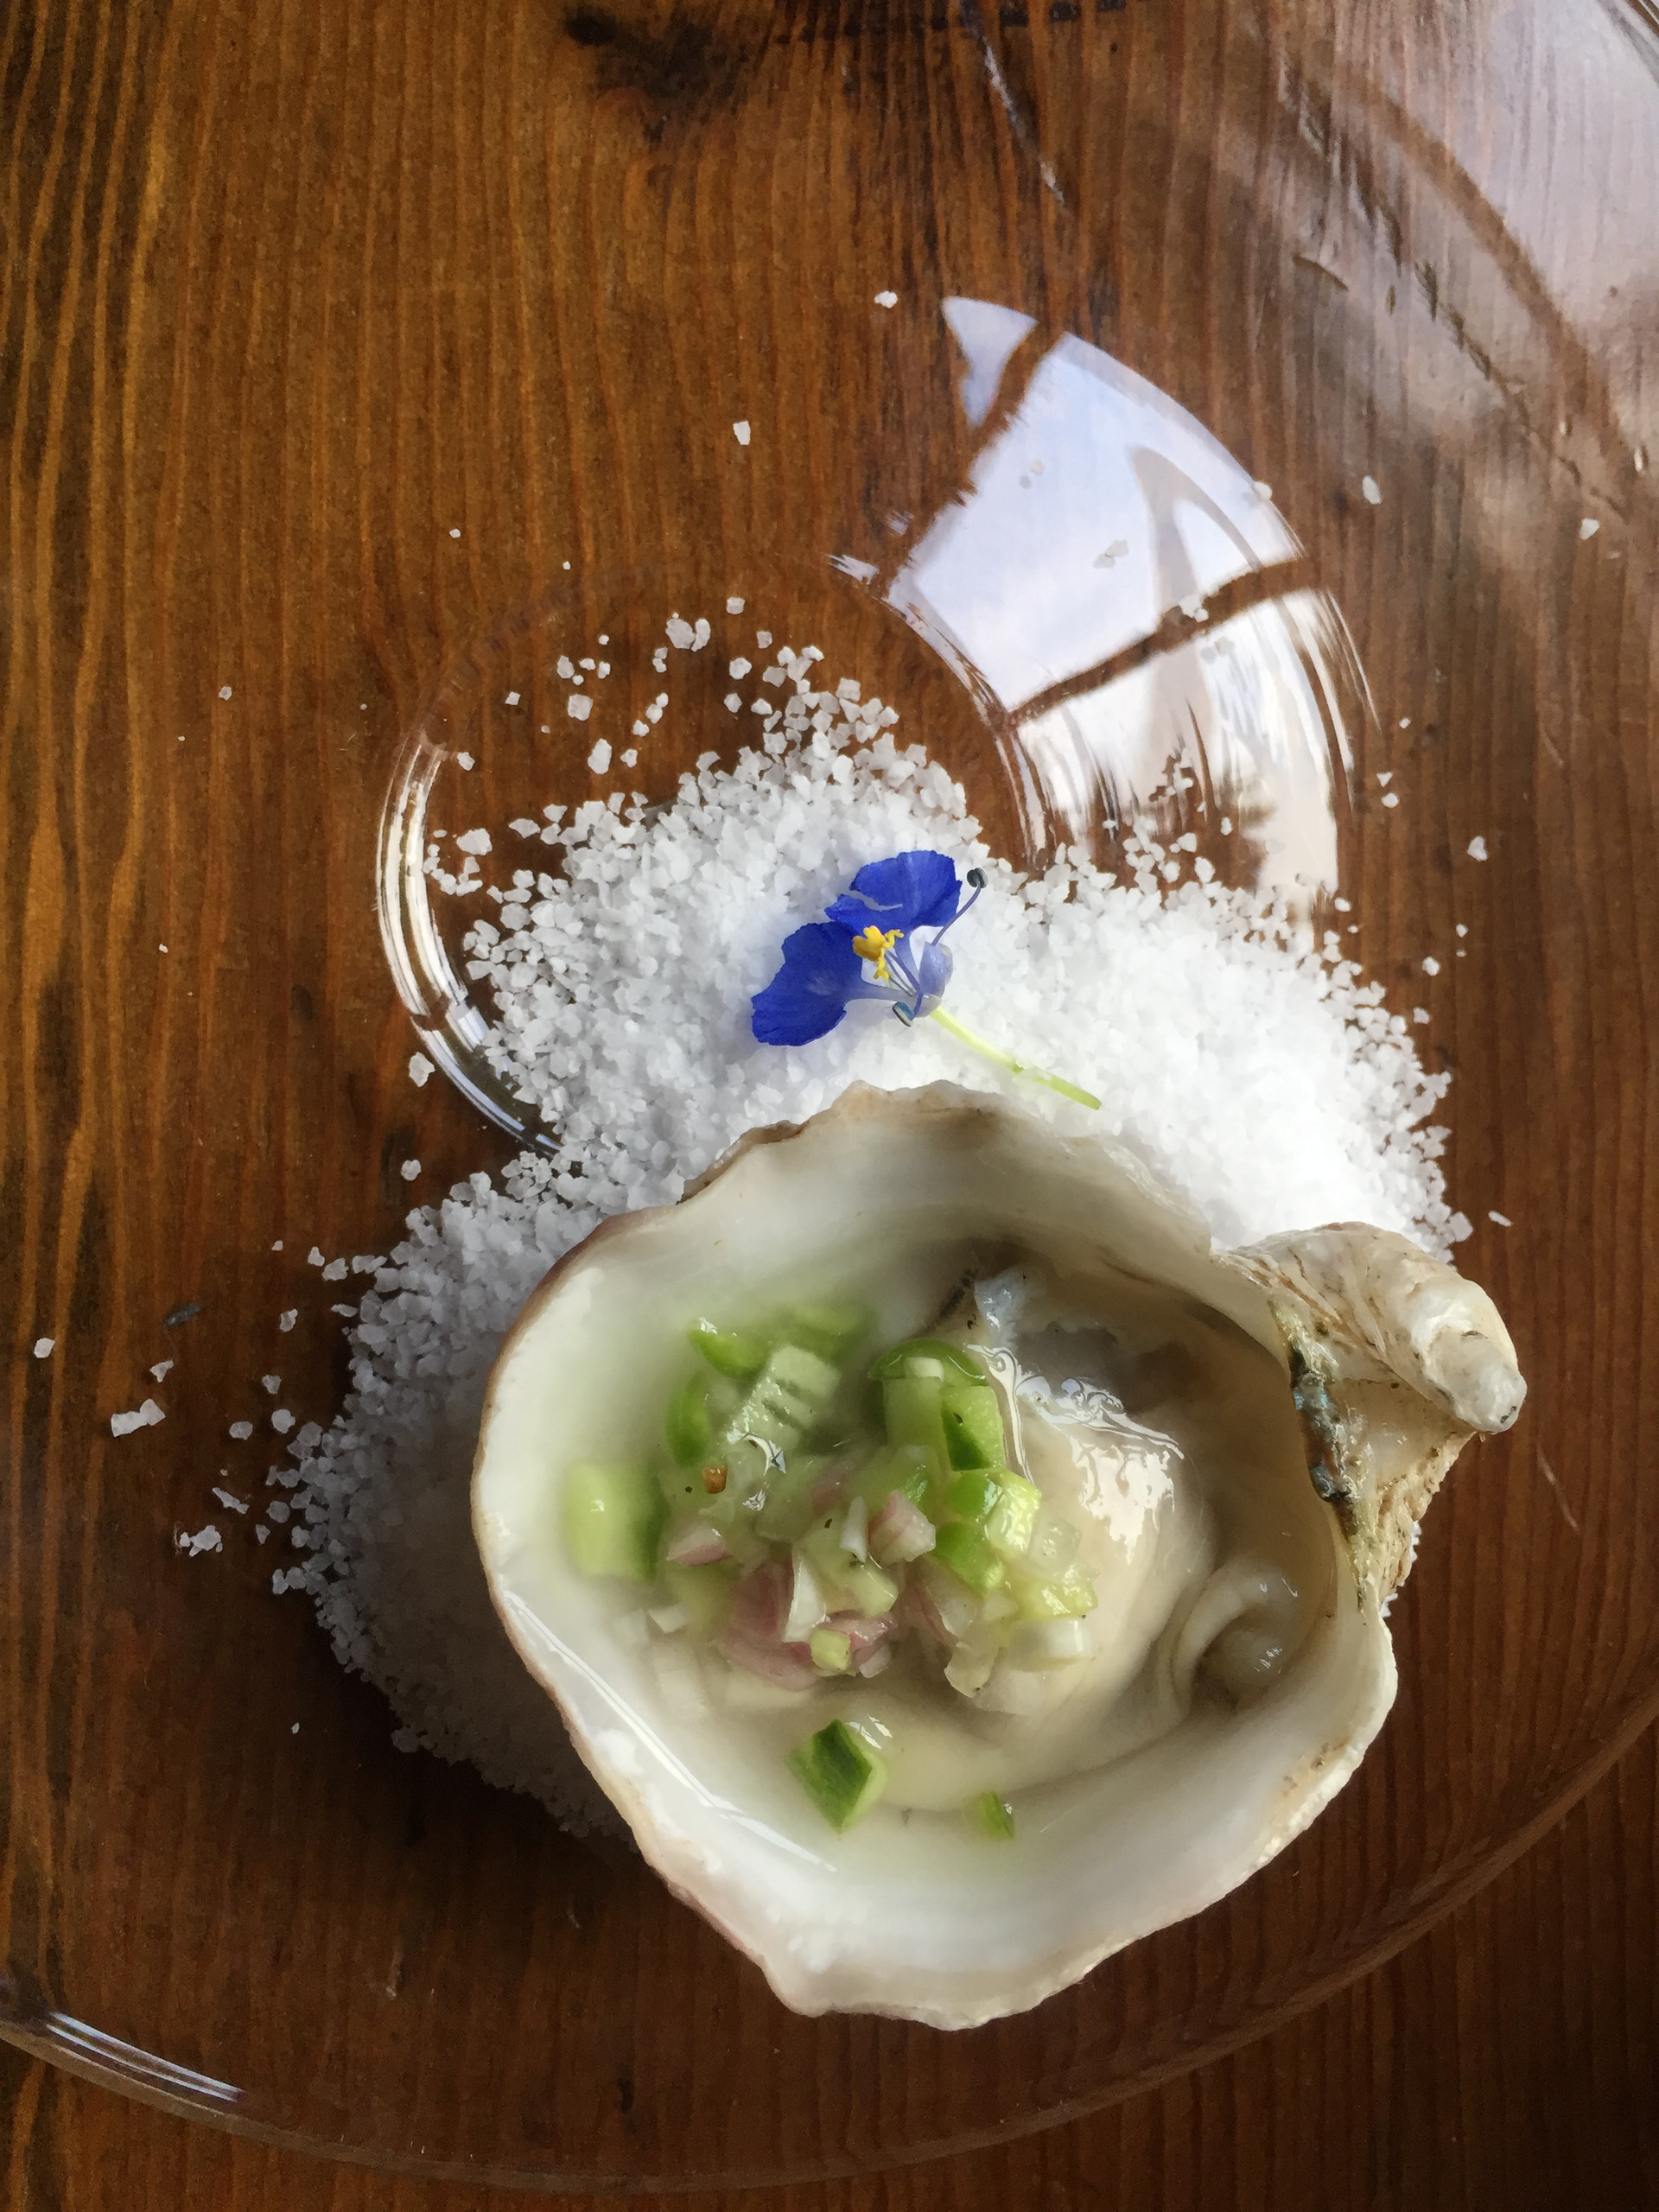 Oyster with Arak and cucumber